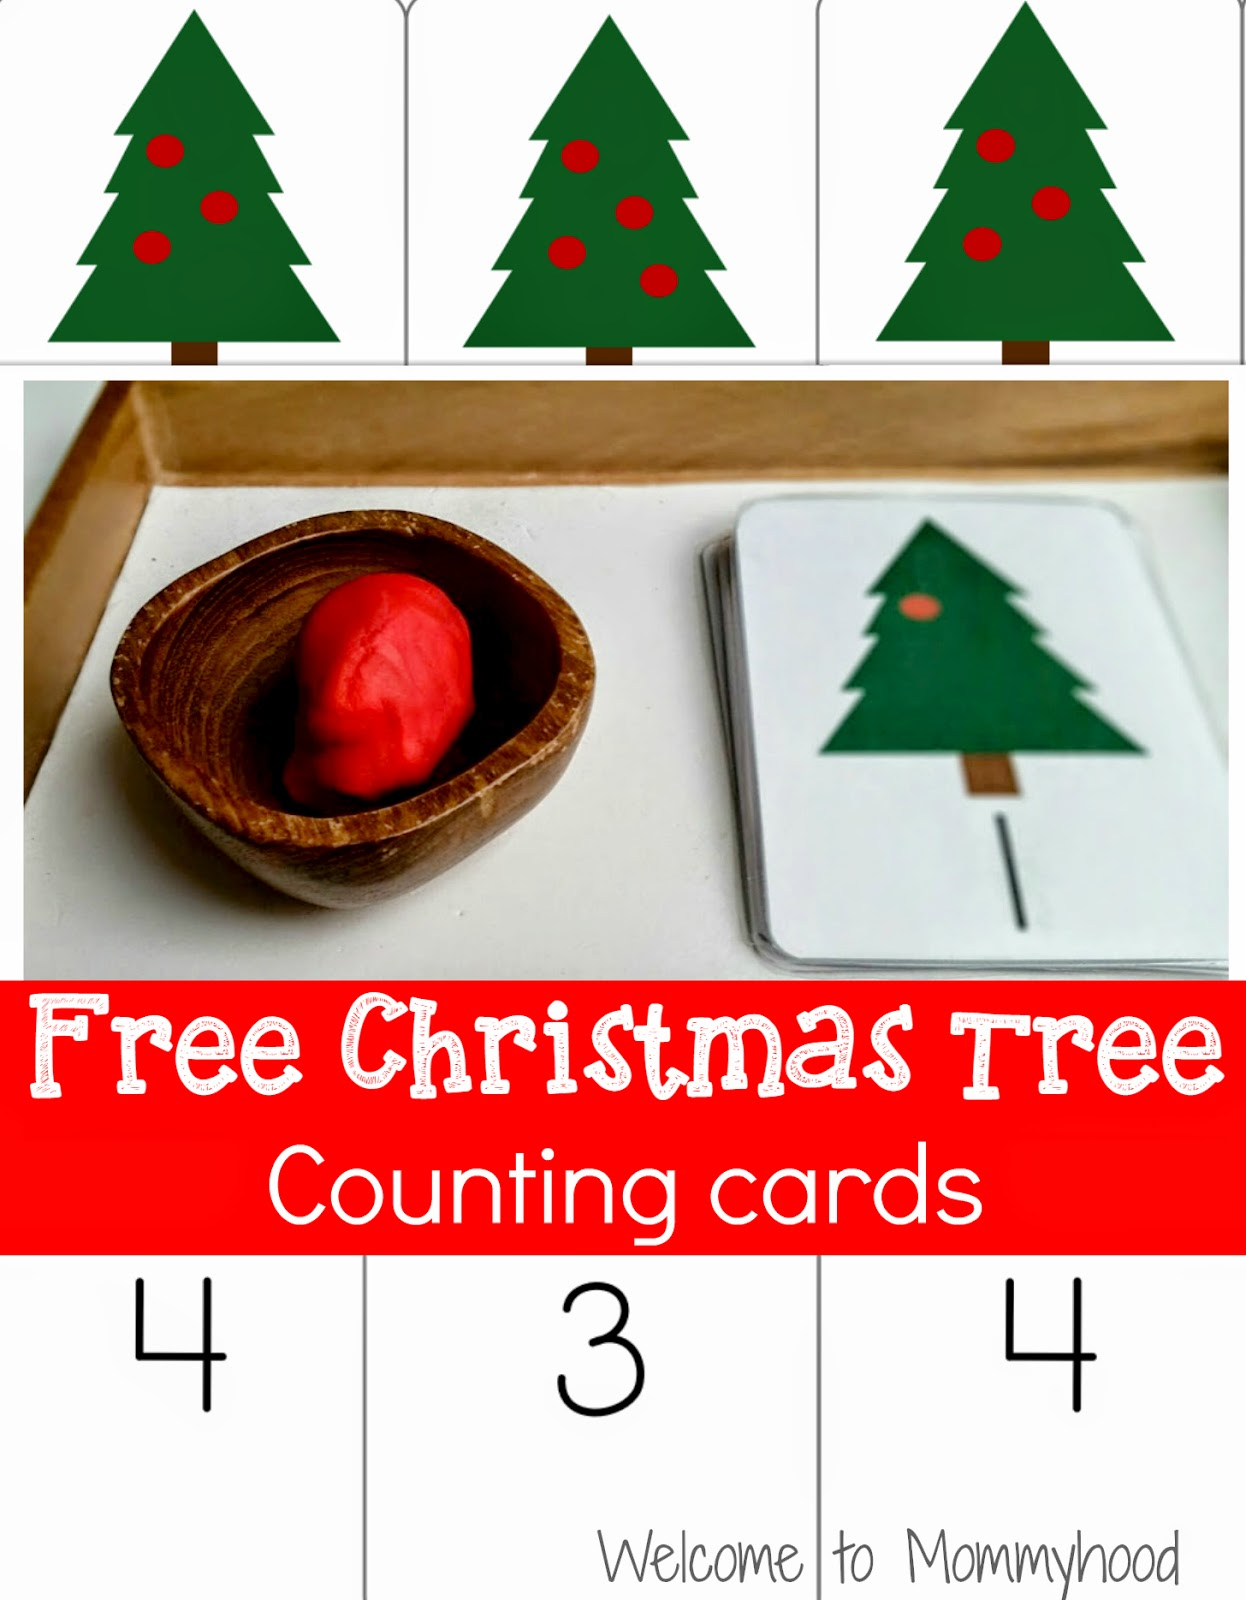 Christmas Activities For Kids: Counting cards and Montessori Inspired Activities {Welcome to Mommyhood} #ChristmasActivitiesForKids, #christmasActivities, #montessori, #christmasplaydough